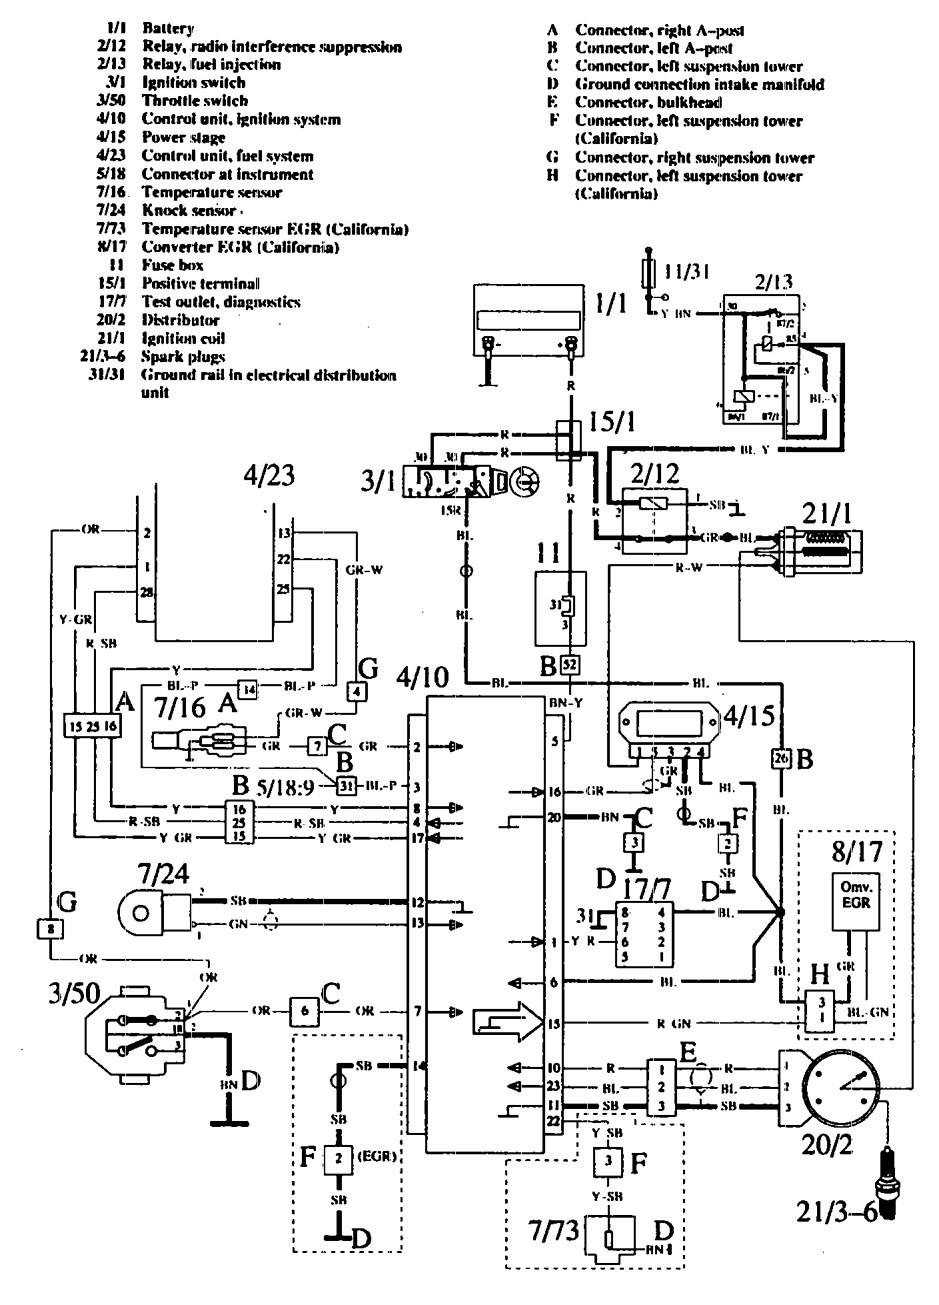 Acura Legend Fuse Box. Acura. Auto Wiring Diagram